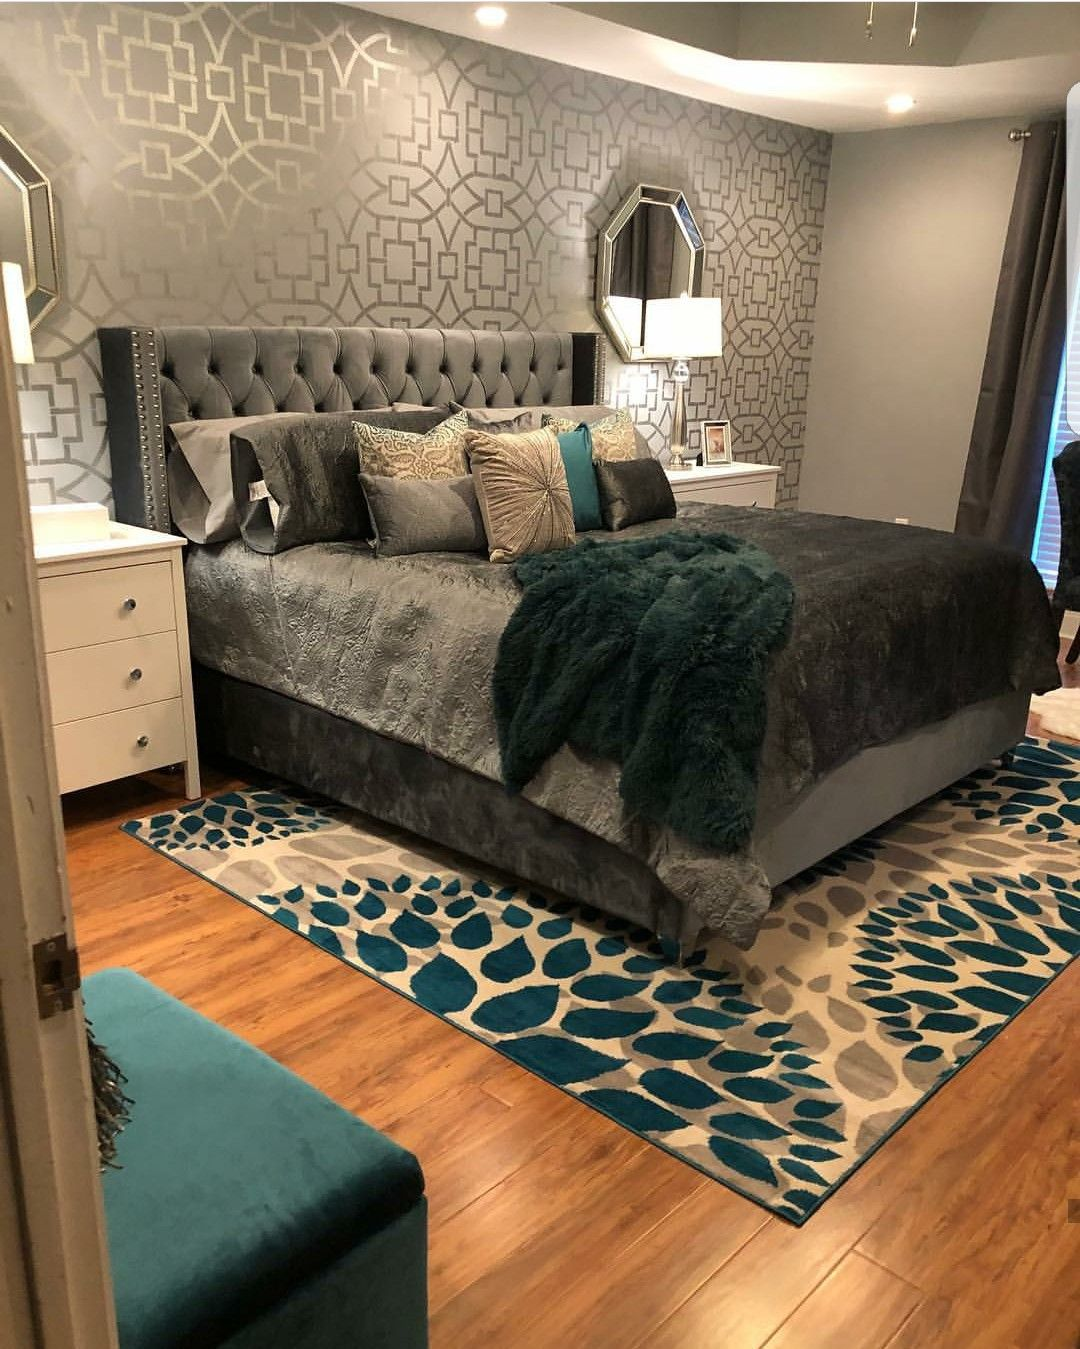 This bedroom is | Home bedroom, Bedroom themes, Home